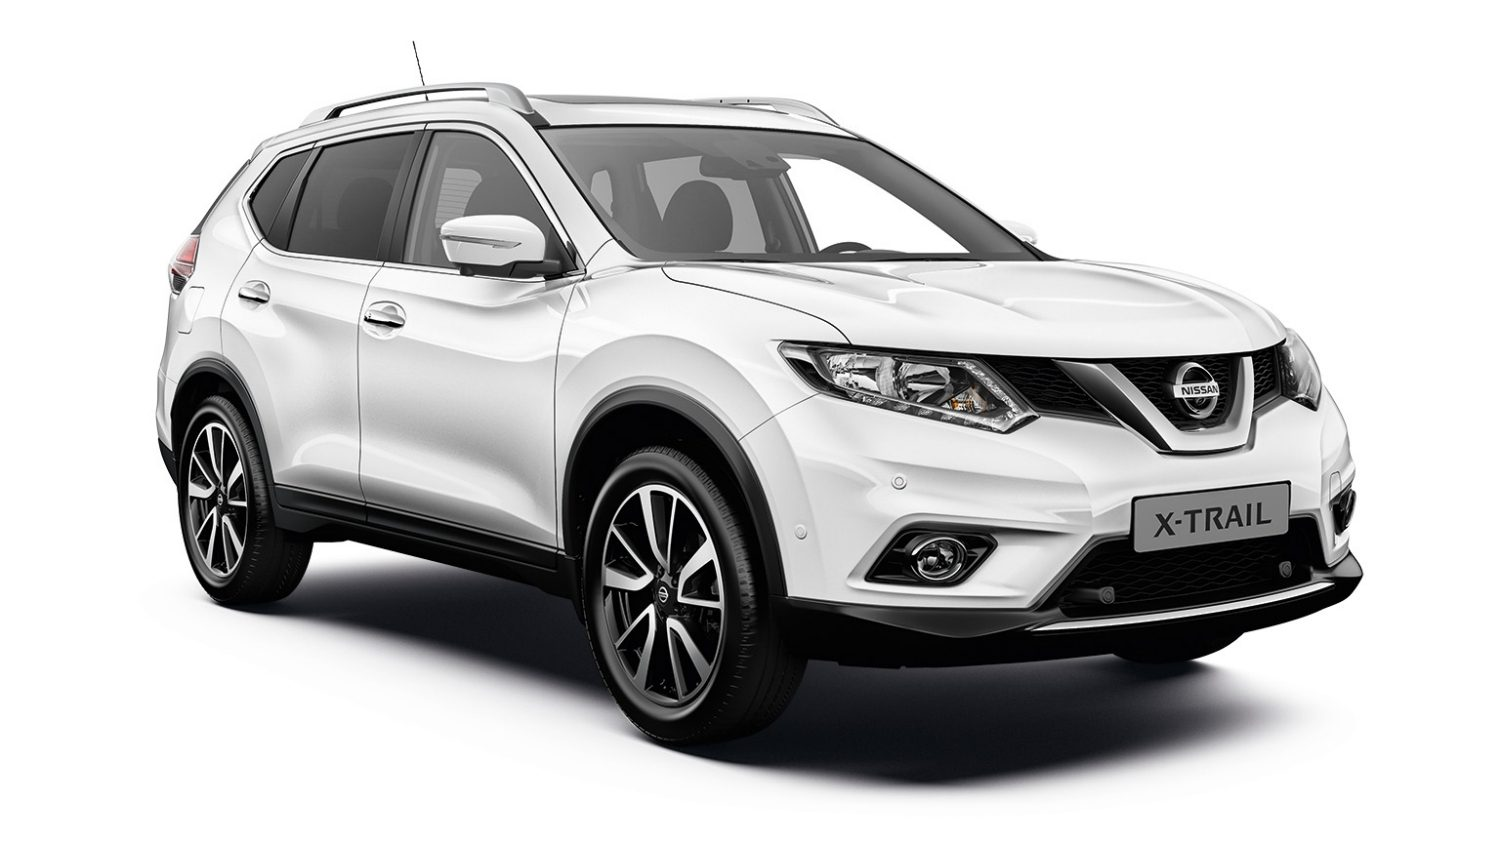 Nissan X-Trail Tekna - 3/4 front view